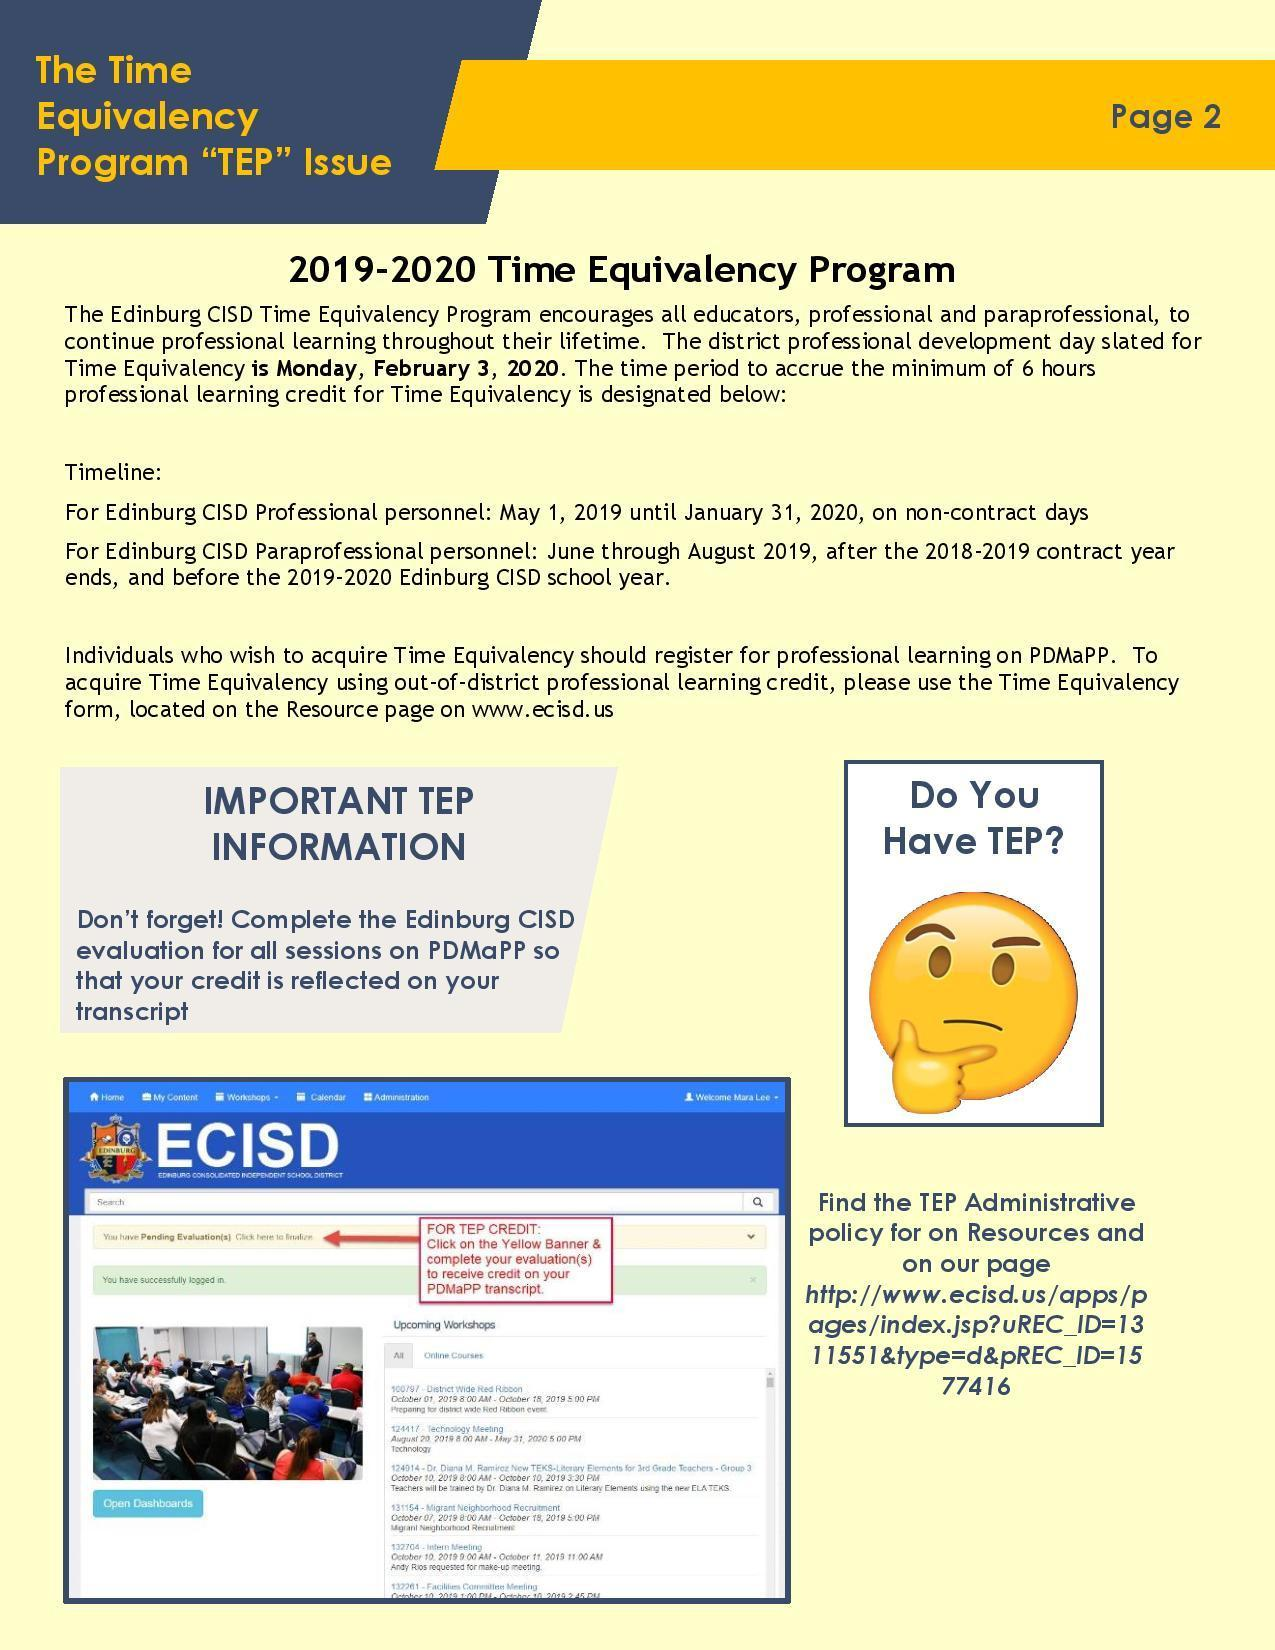 The Time Equivalency Program Newsletter page 2